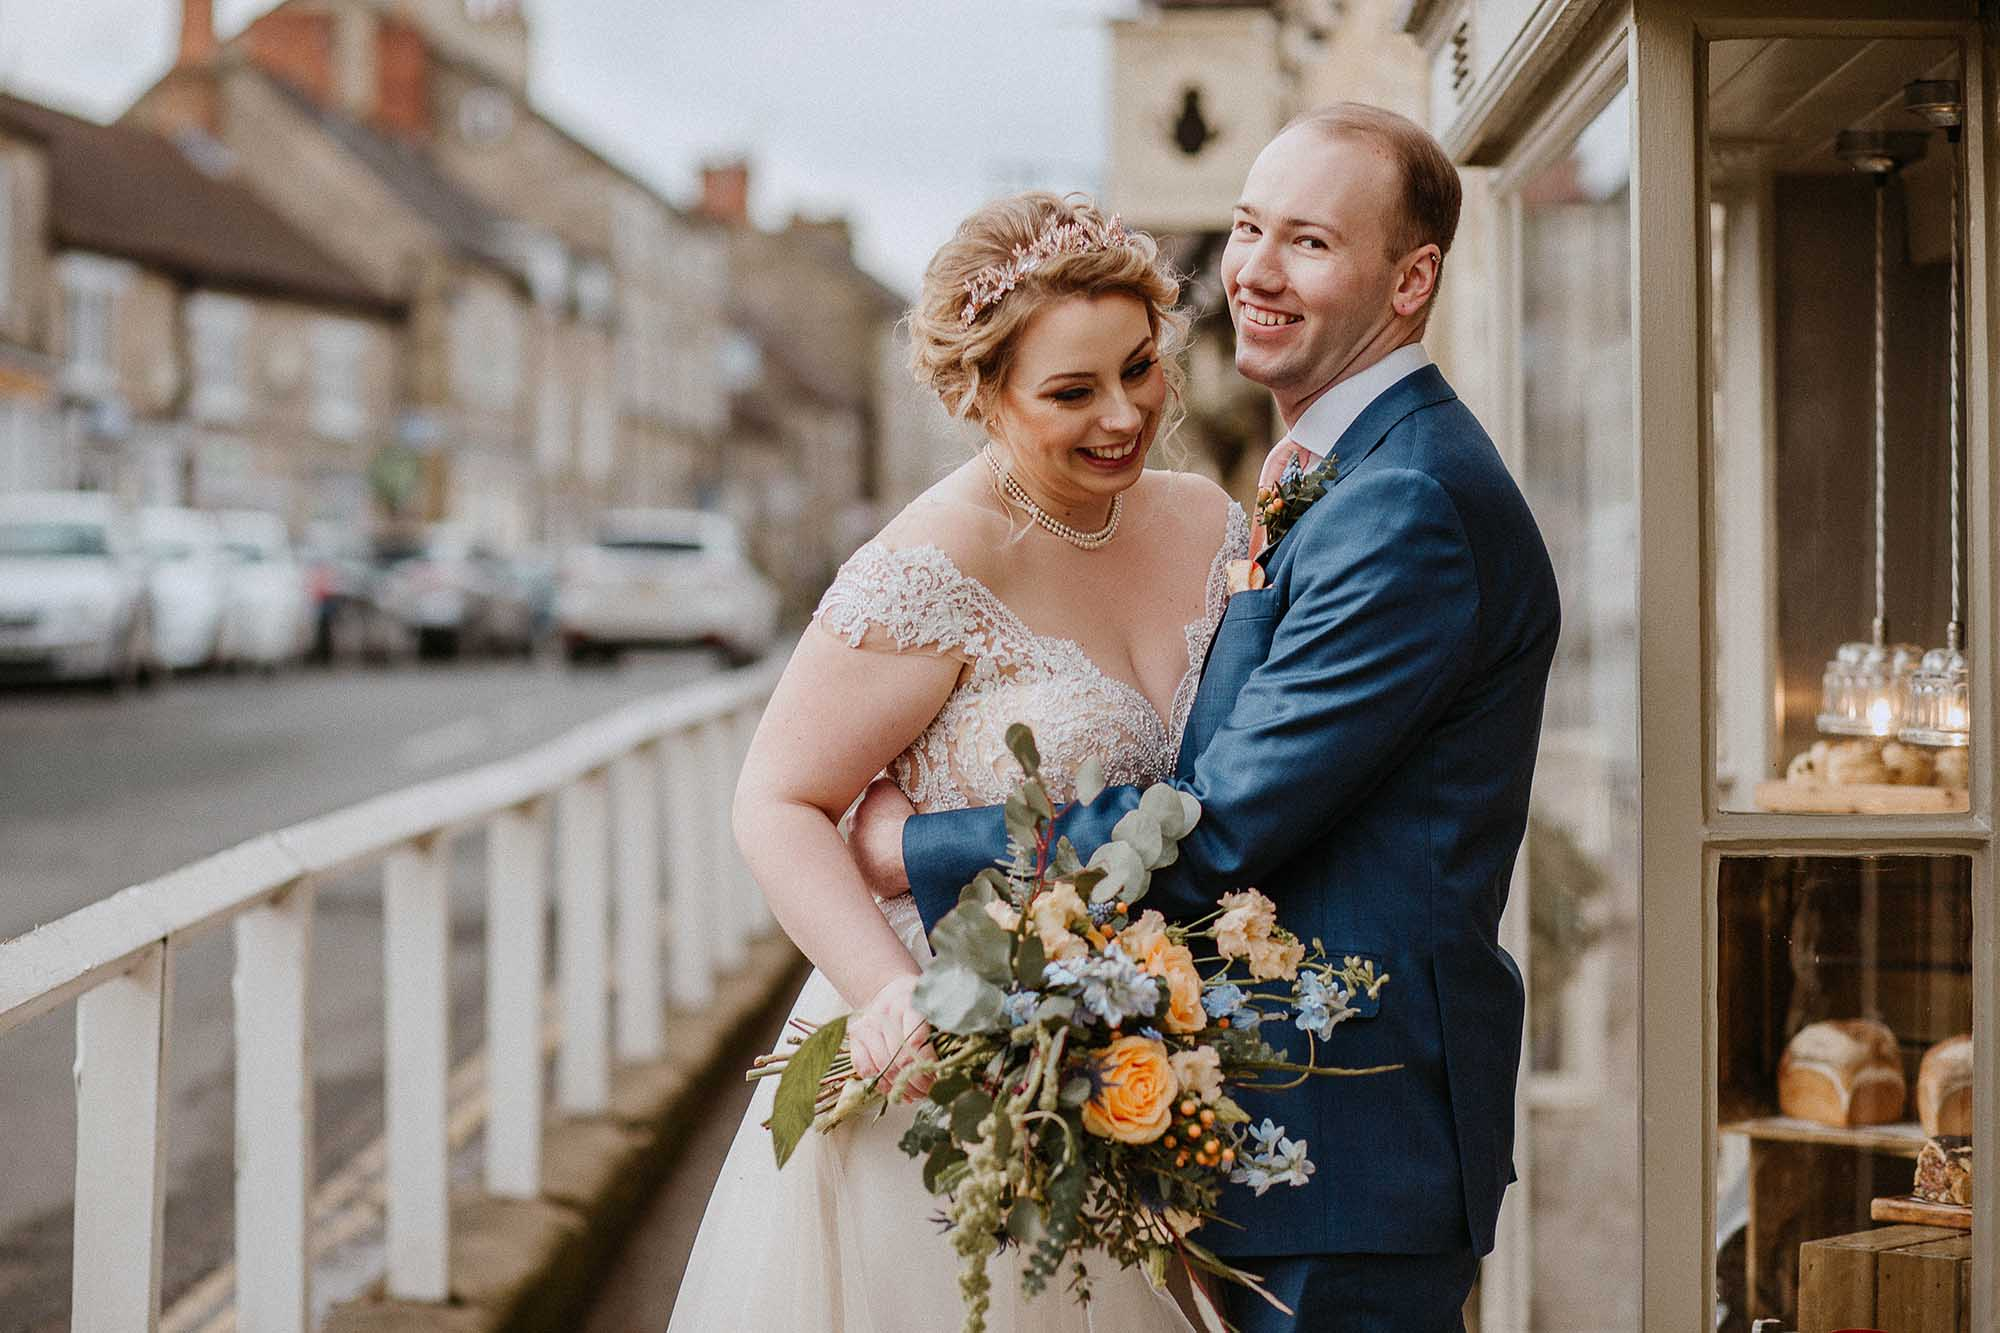 natural and creative wedding photographer North Yorkshire